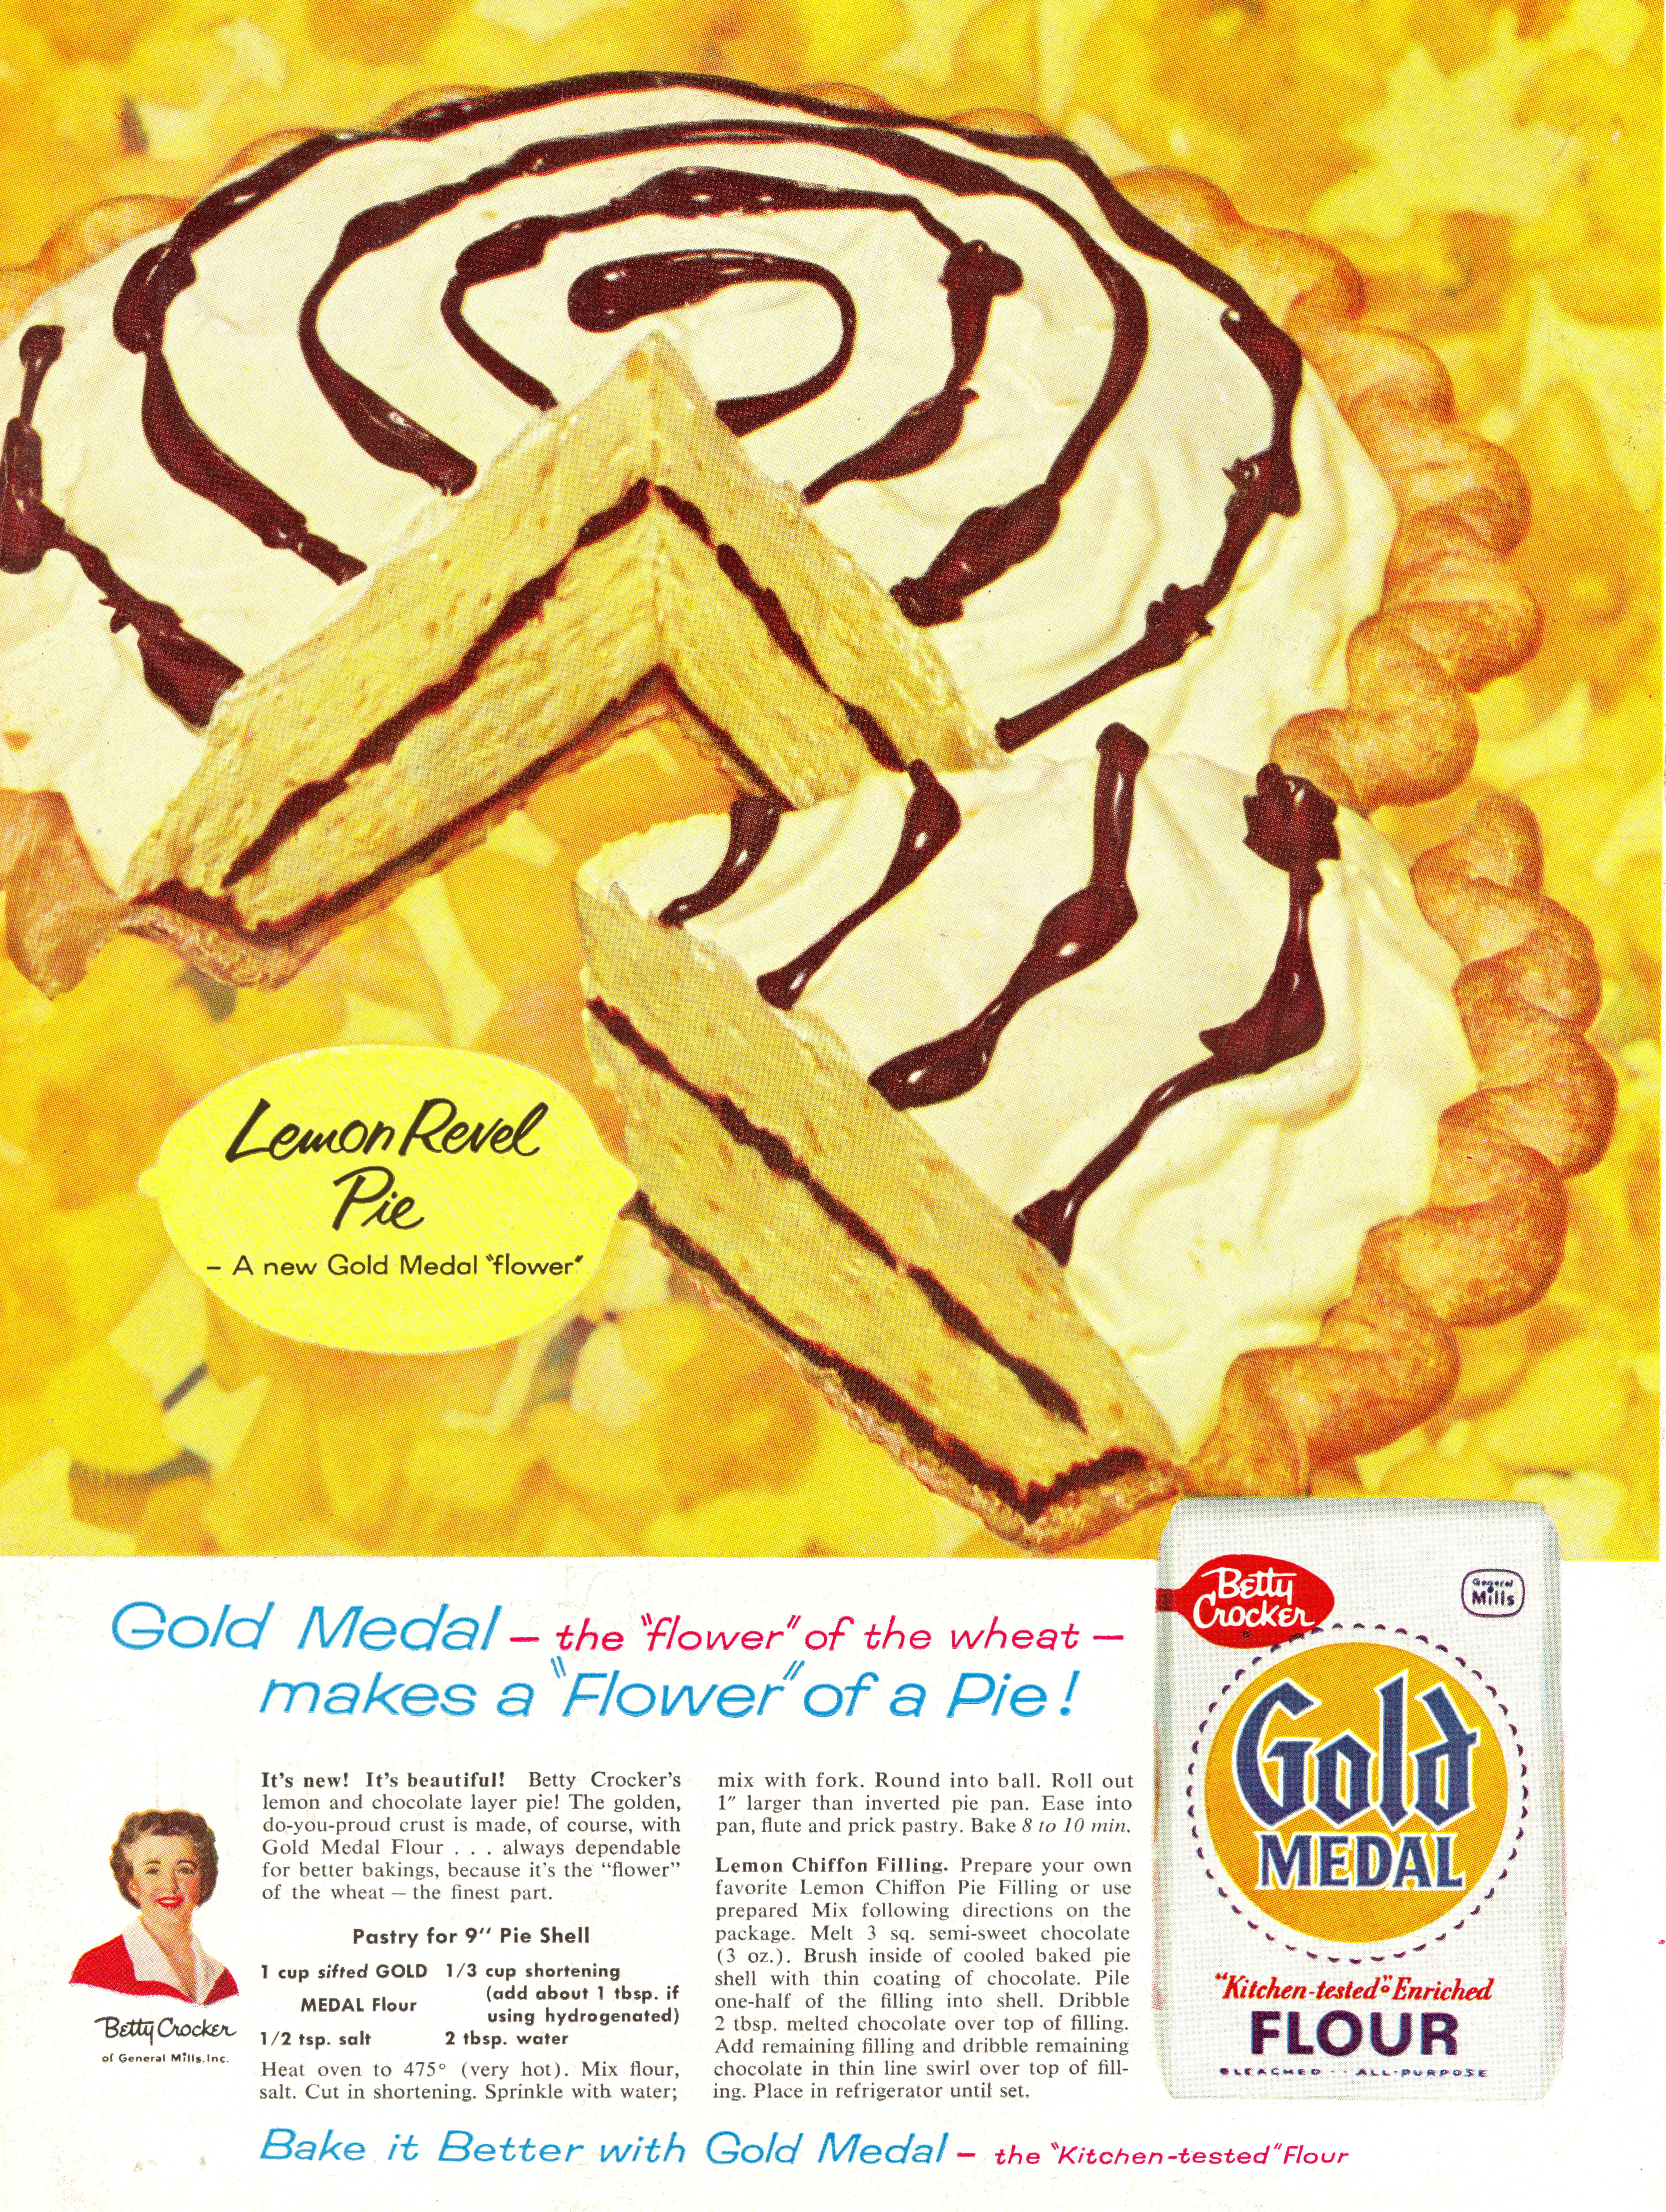 Gold Medal Flour - published in Woman's Day - September 1958